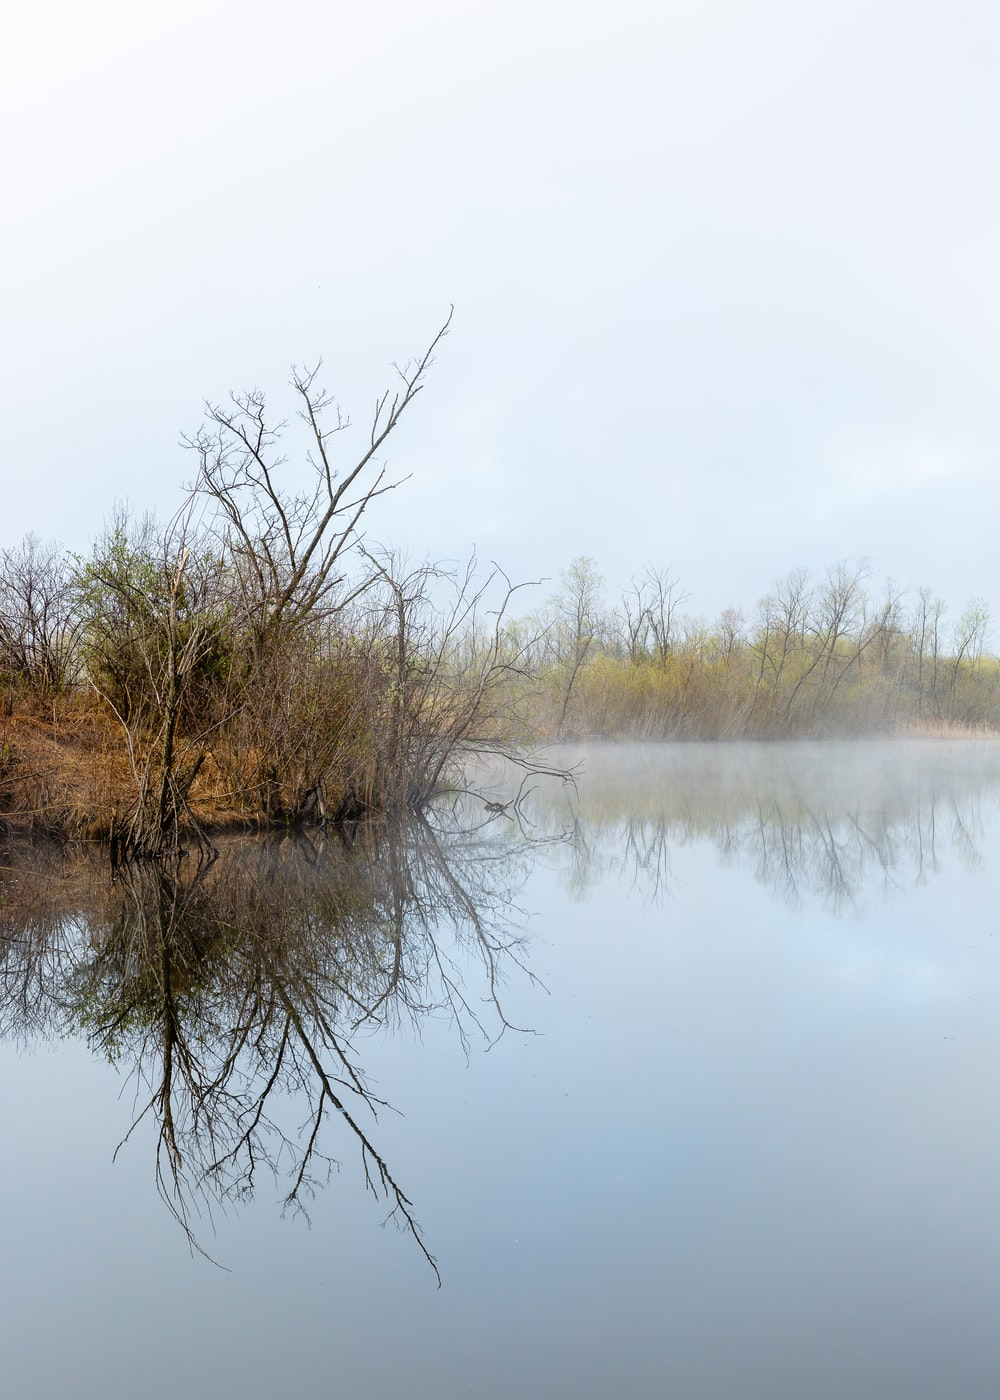 bare tree by calm body of water